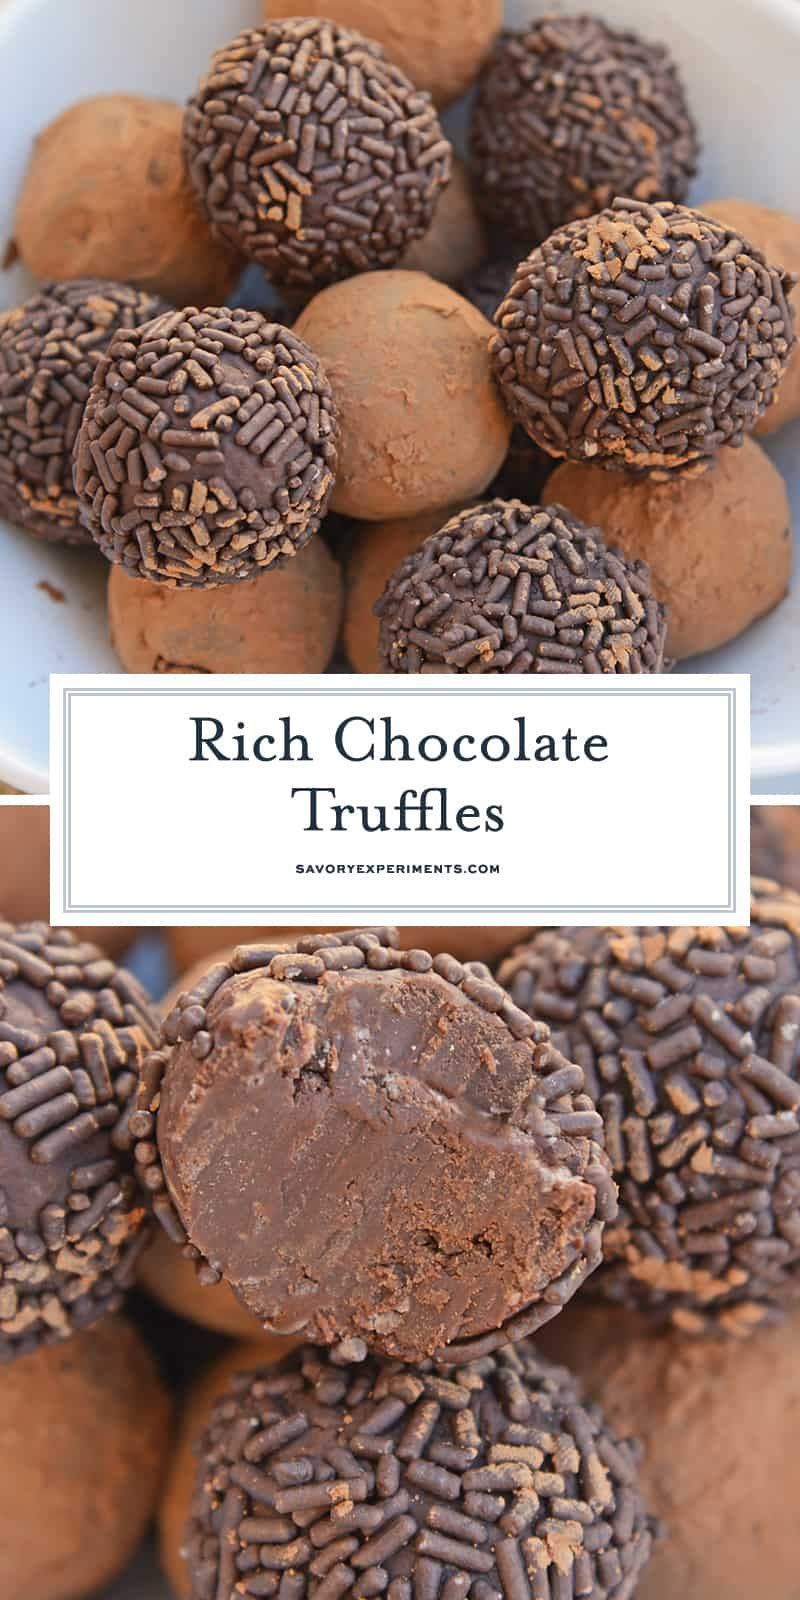 Easy Chocolate Truffles Only Use 4 Ingredients Including Sweetened Condensed Chocolate Truffles Easy Sweetened Condensed Milk Recipes Truffle Recipe Chocolate